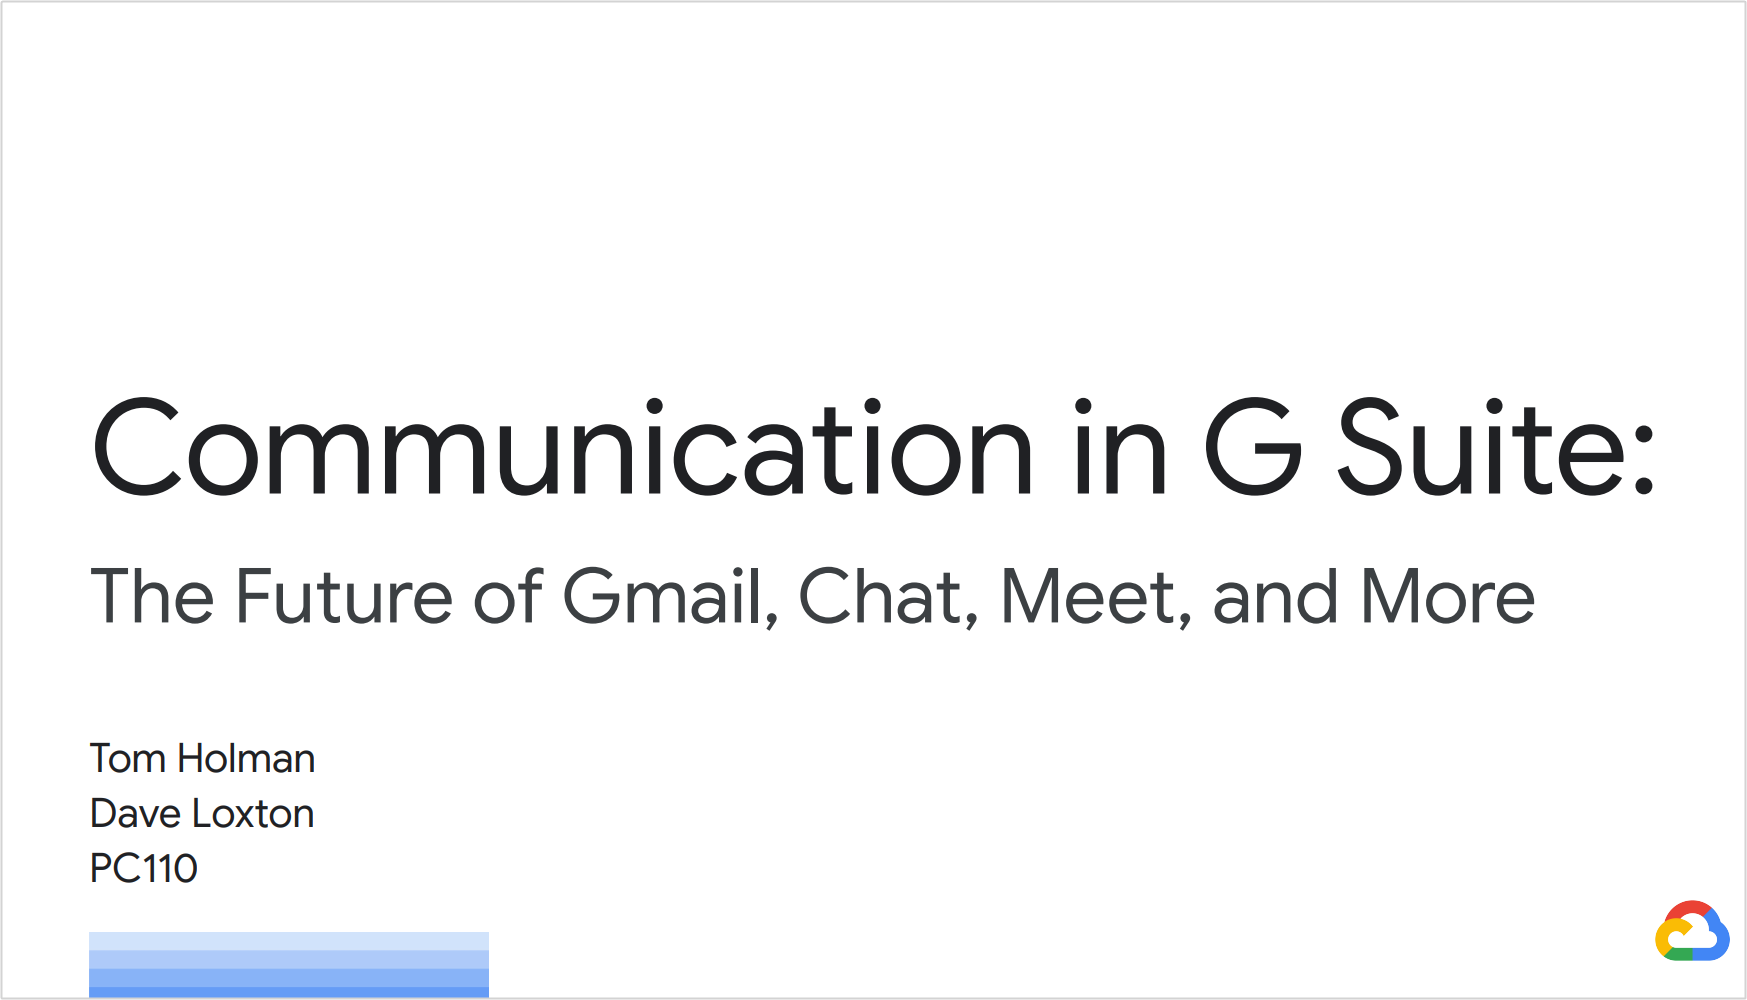 Communication in G Suite: The Future of Gmail, Chat, Meet, and More